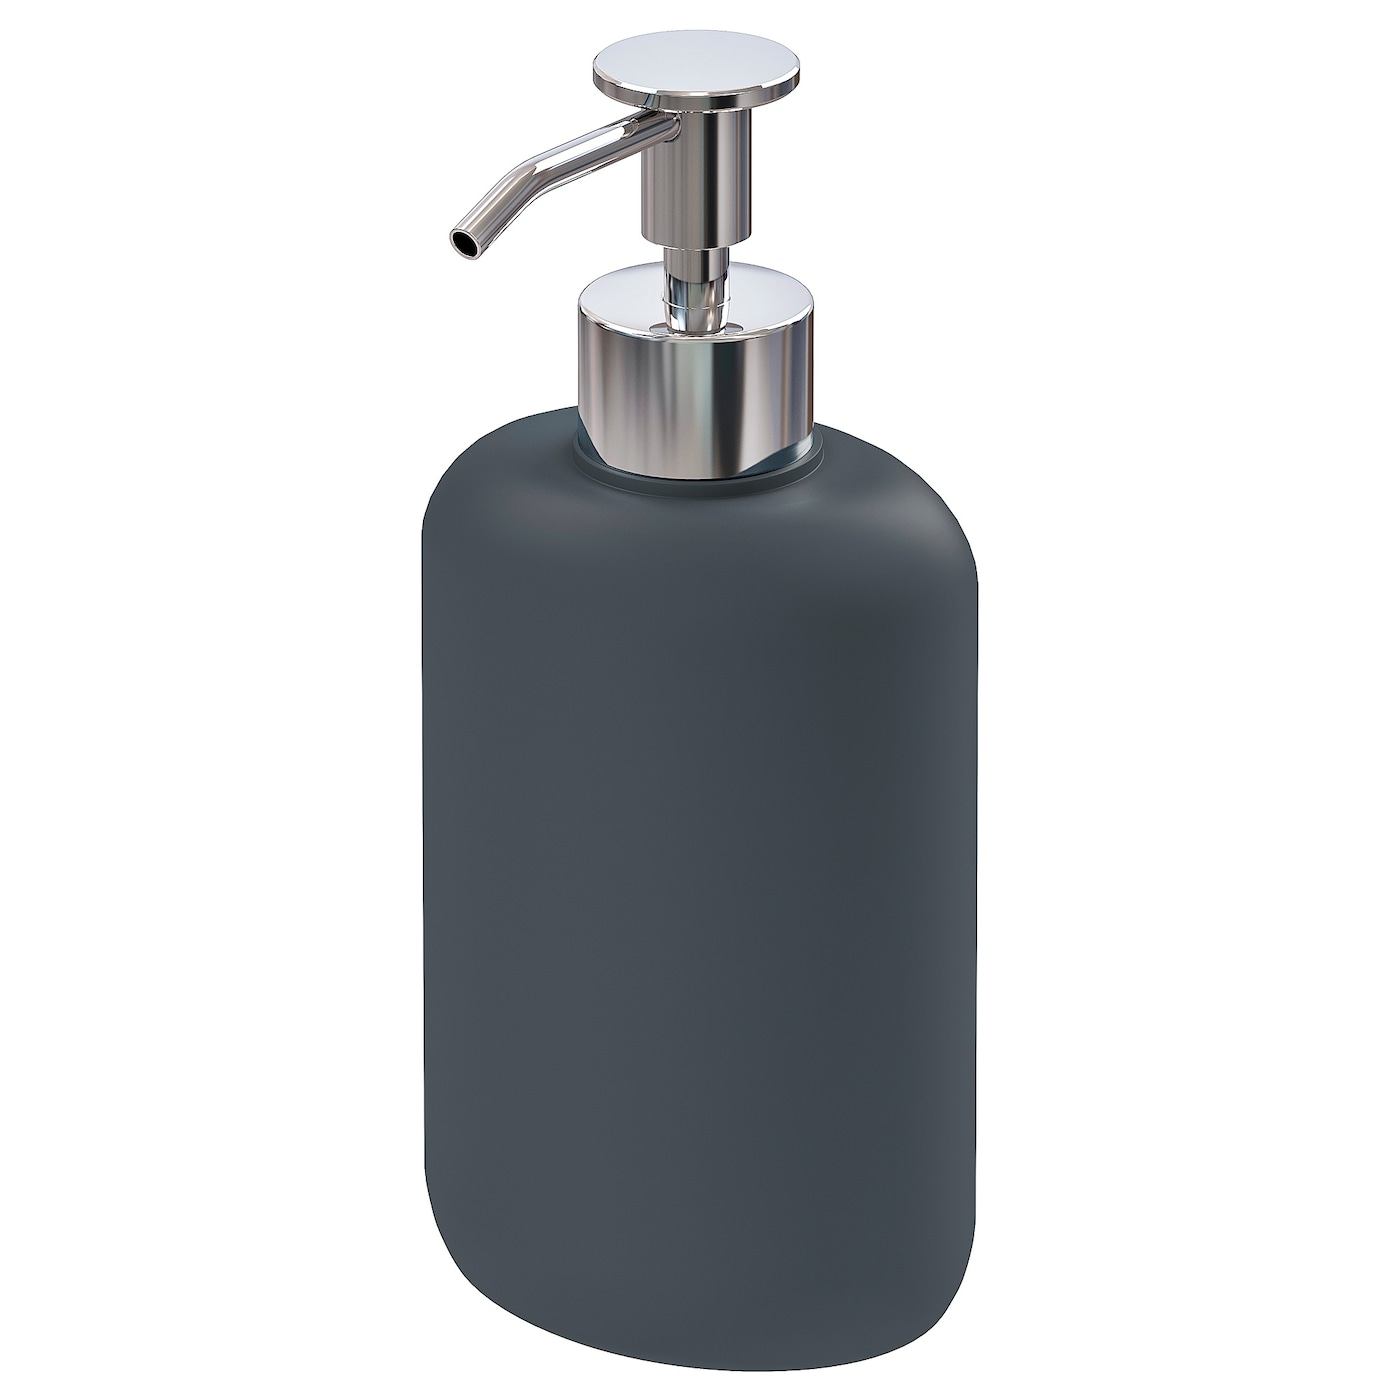 IKEA EKOLN soap dispenser Easy to refill as the dispenser has a wide opening.